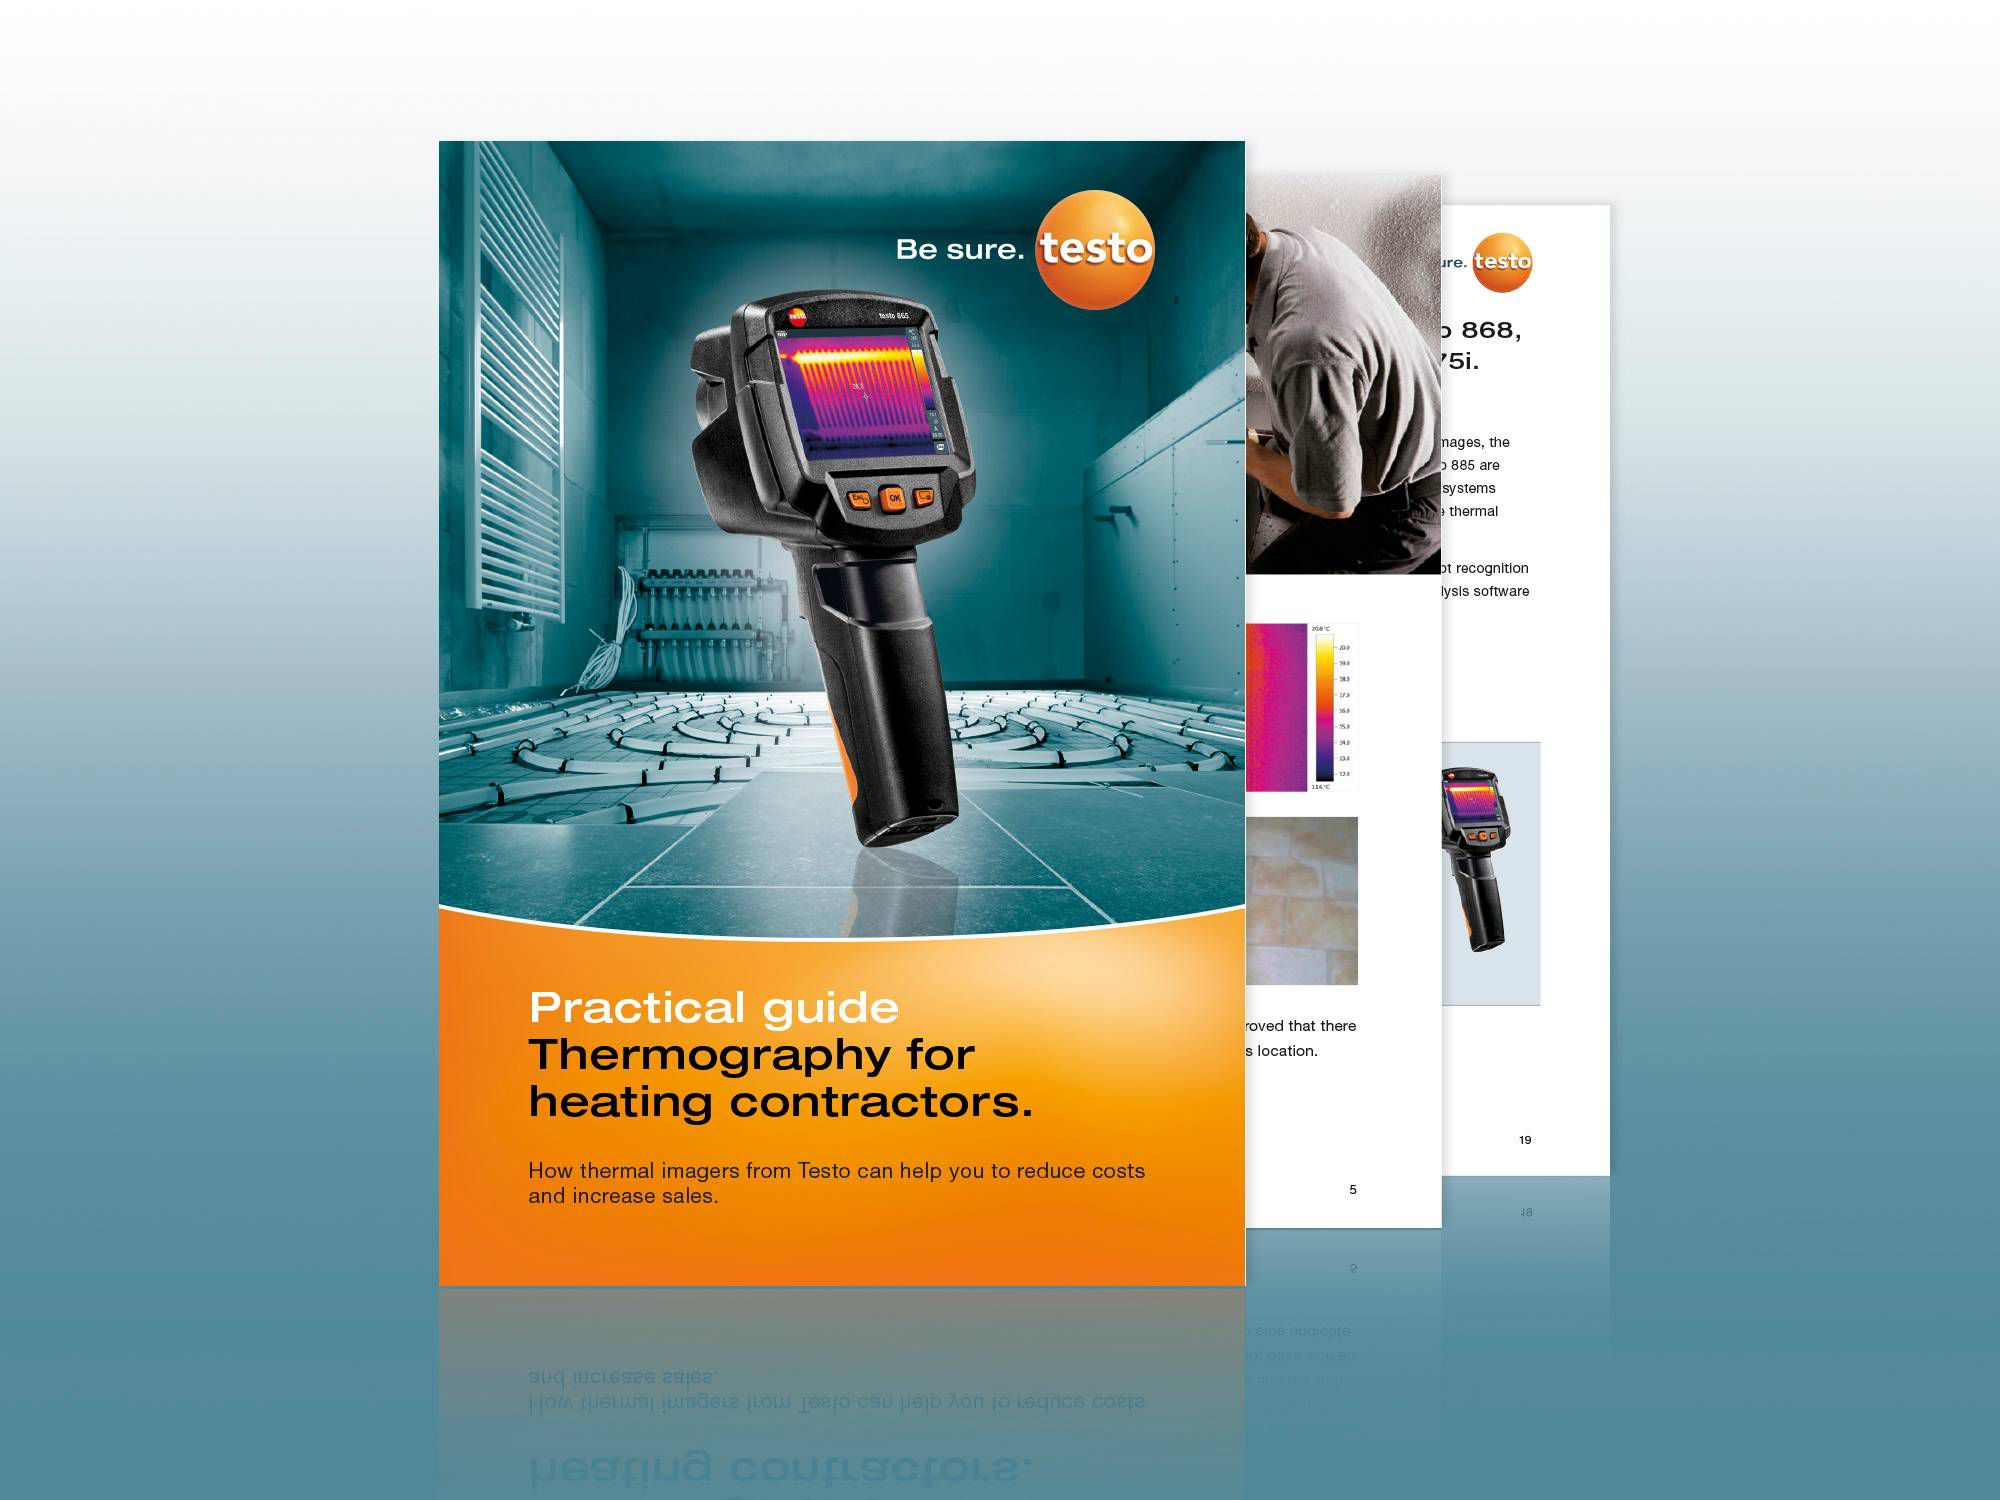 Practical guide for heating contractors